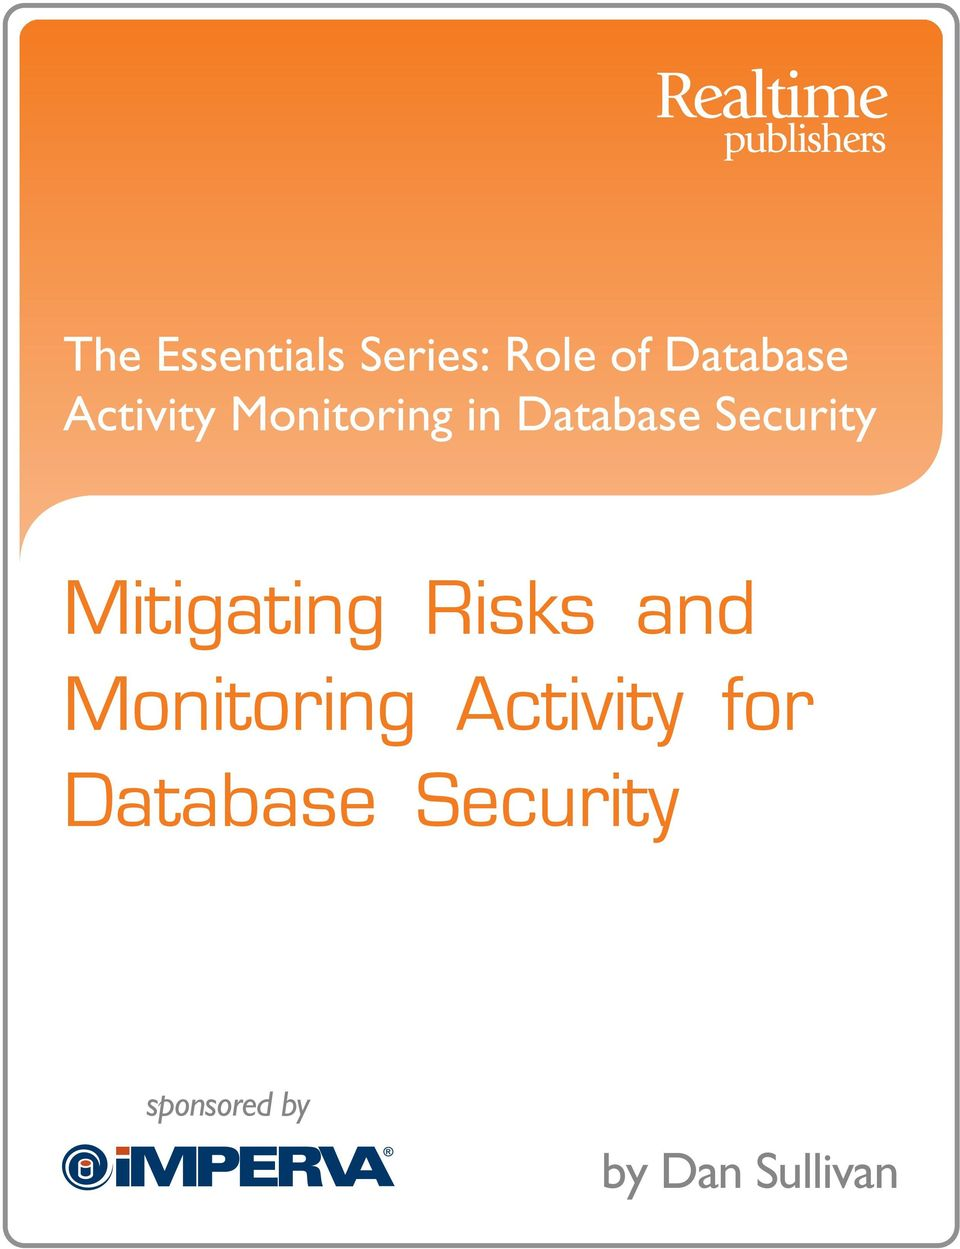 Mitigating Risks and Monitoring Activity